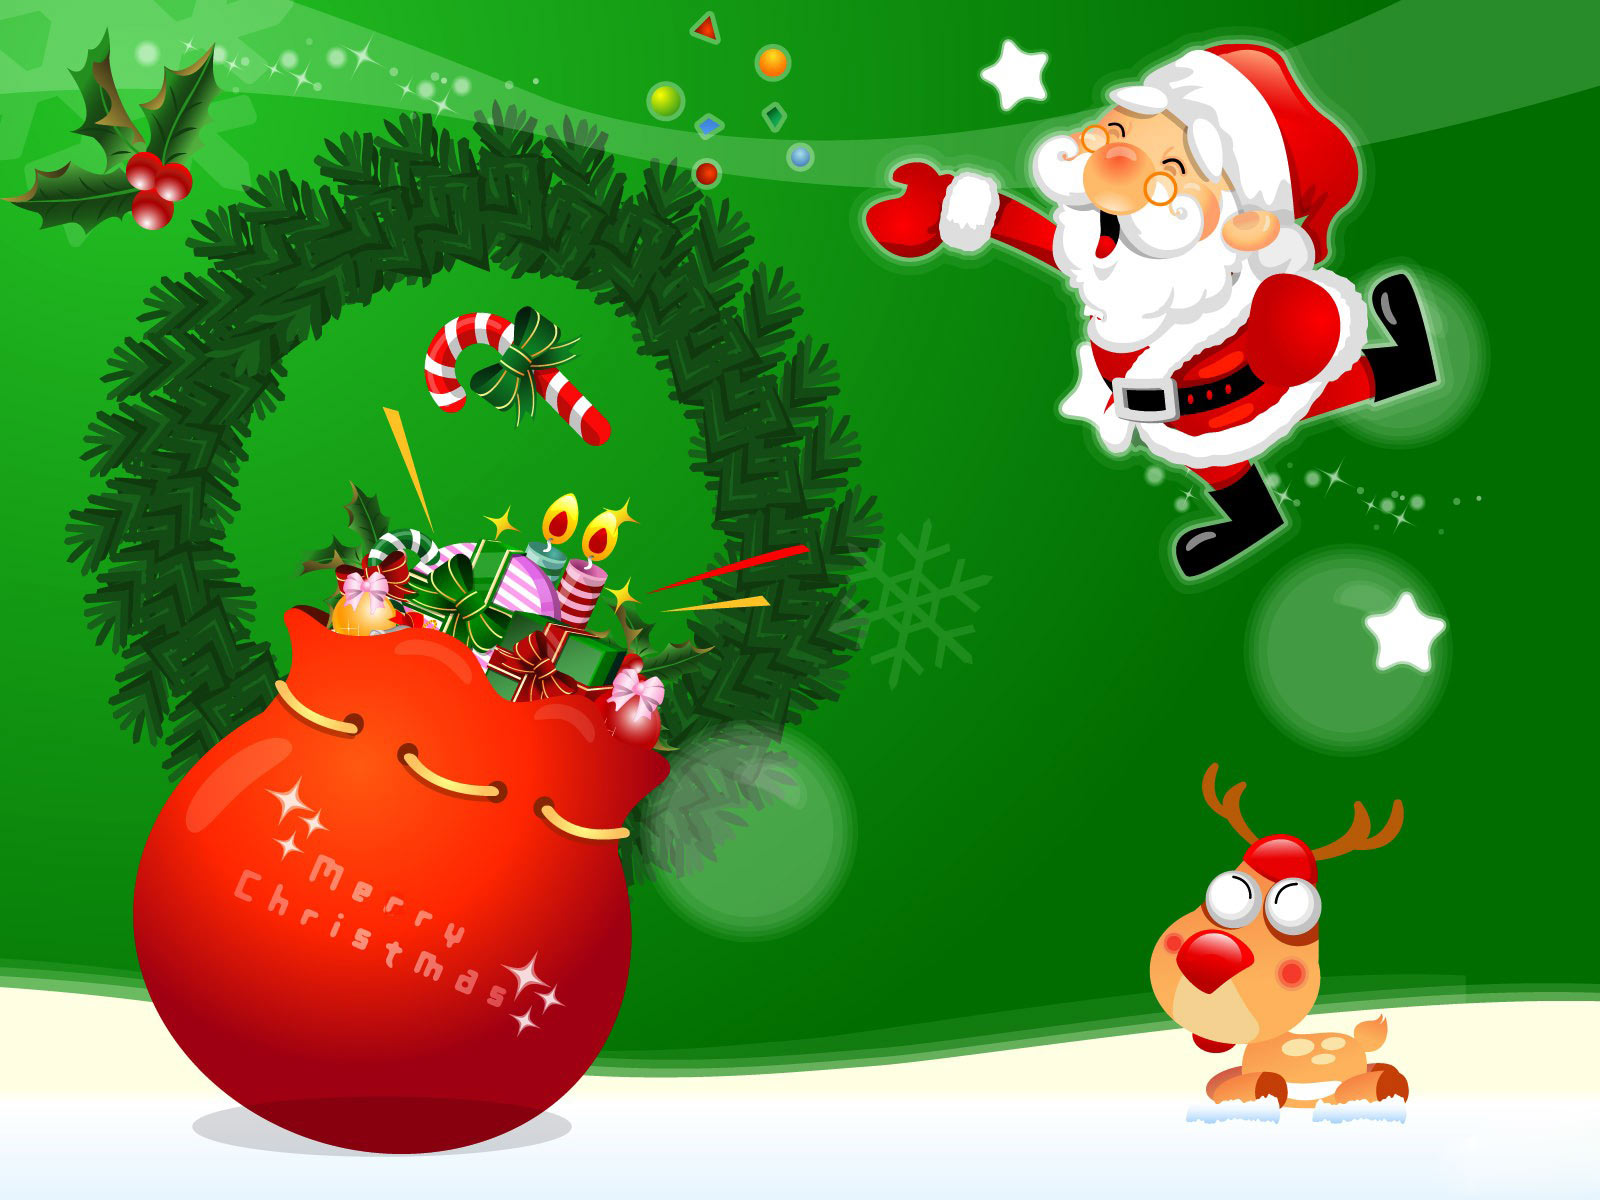 Christmas Wallpapers Christmas Desktop Wallpapers 1600x1200